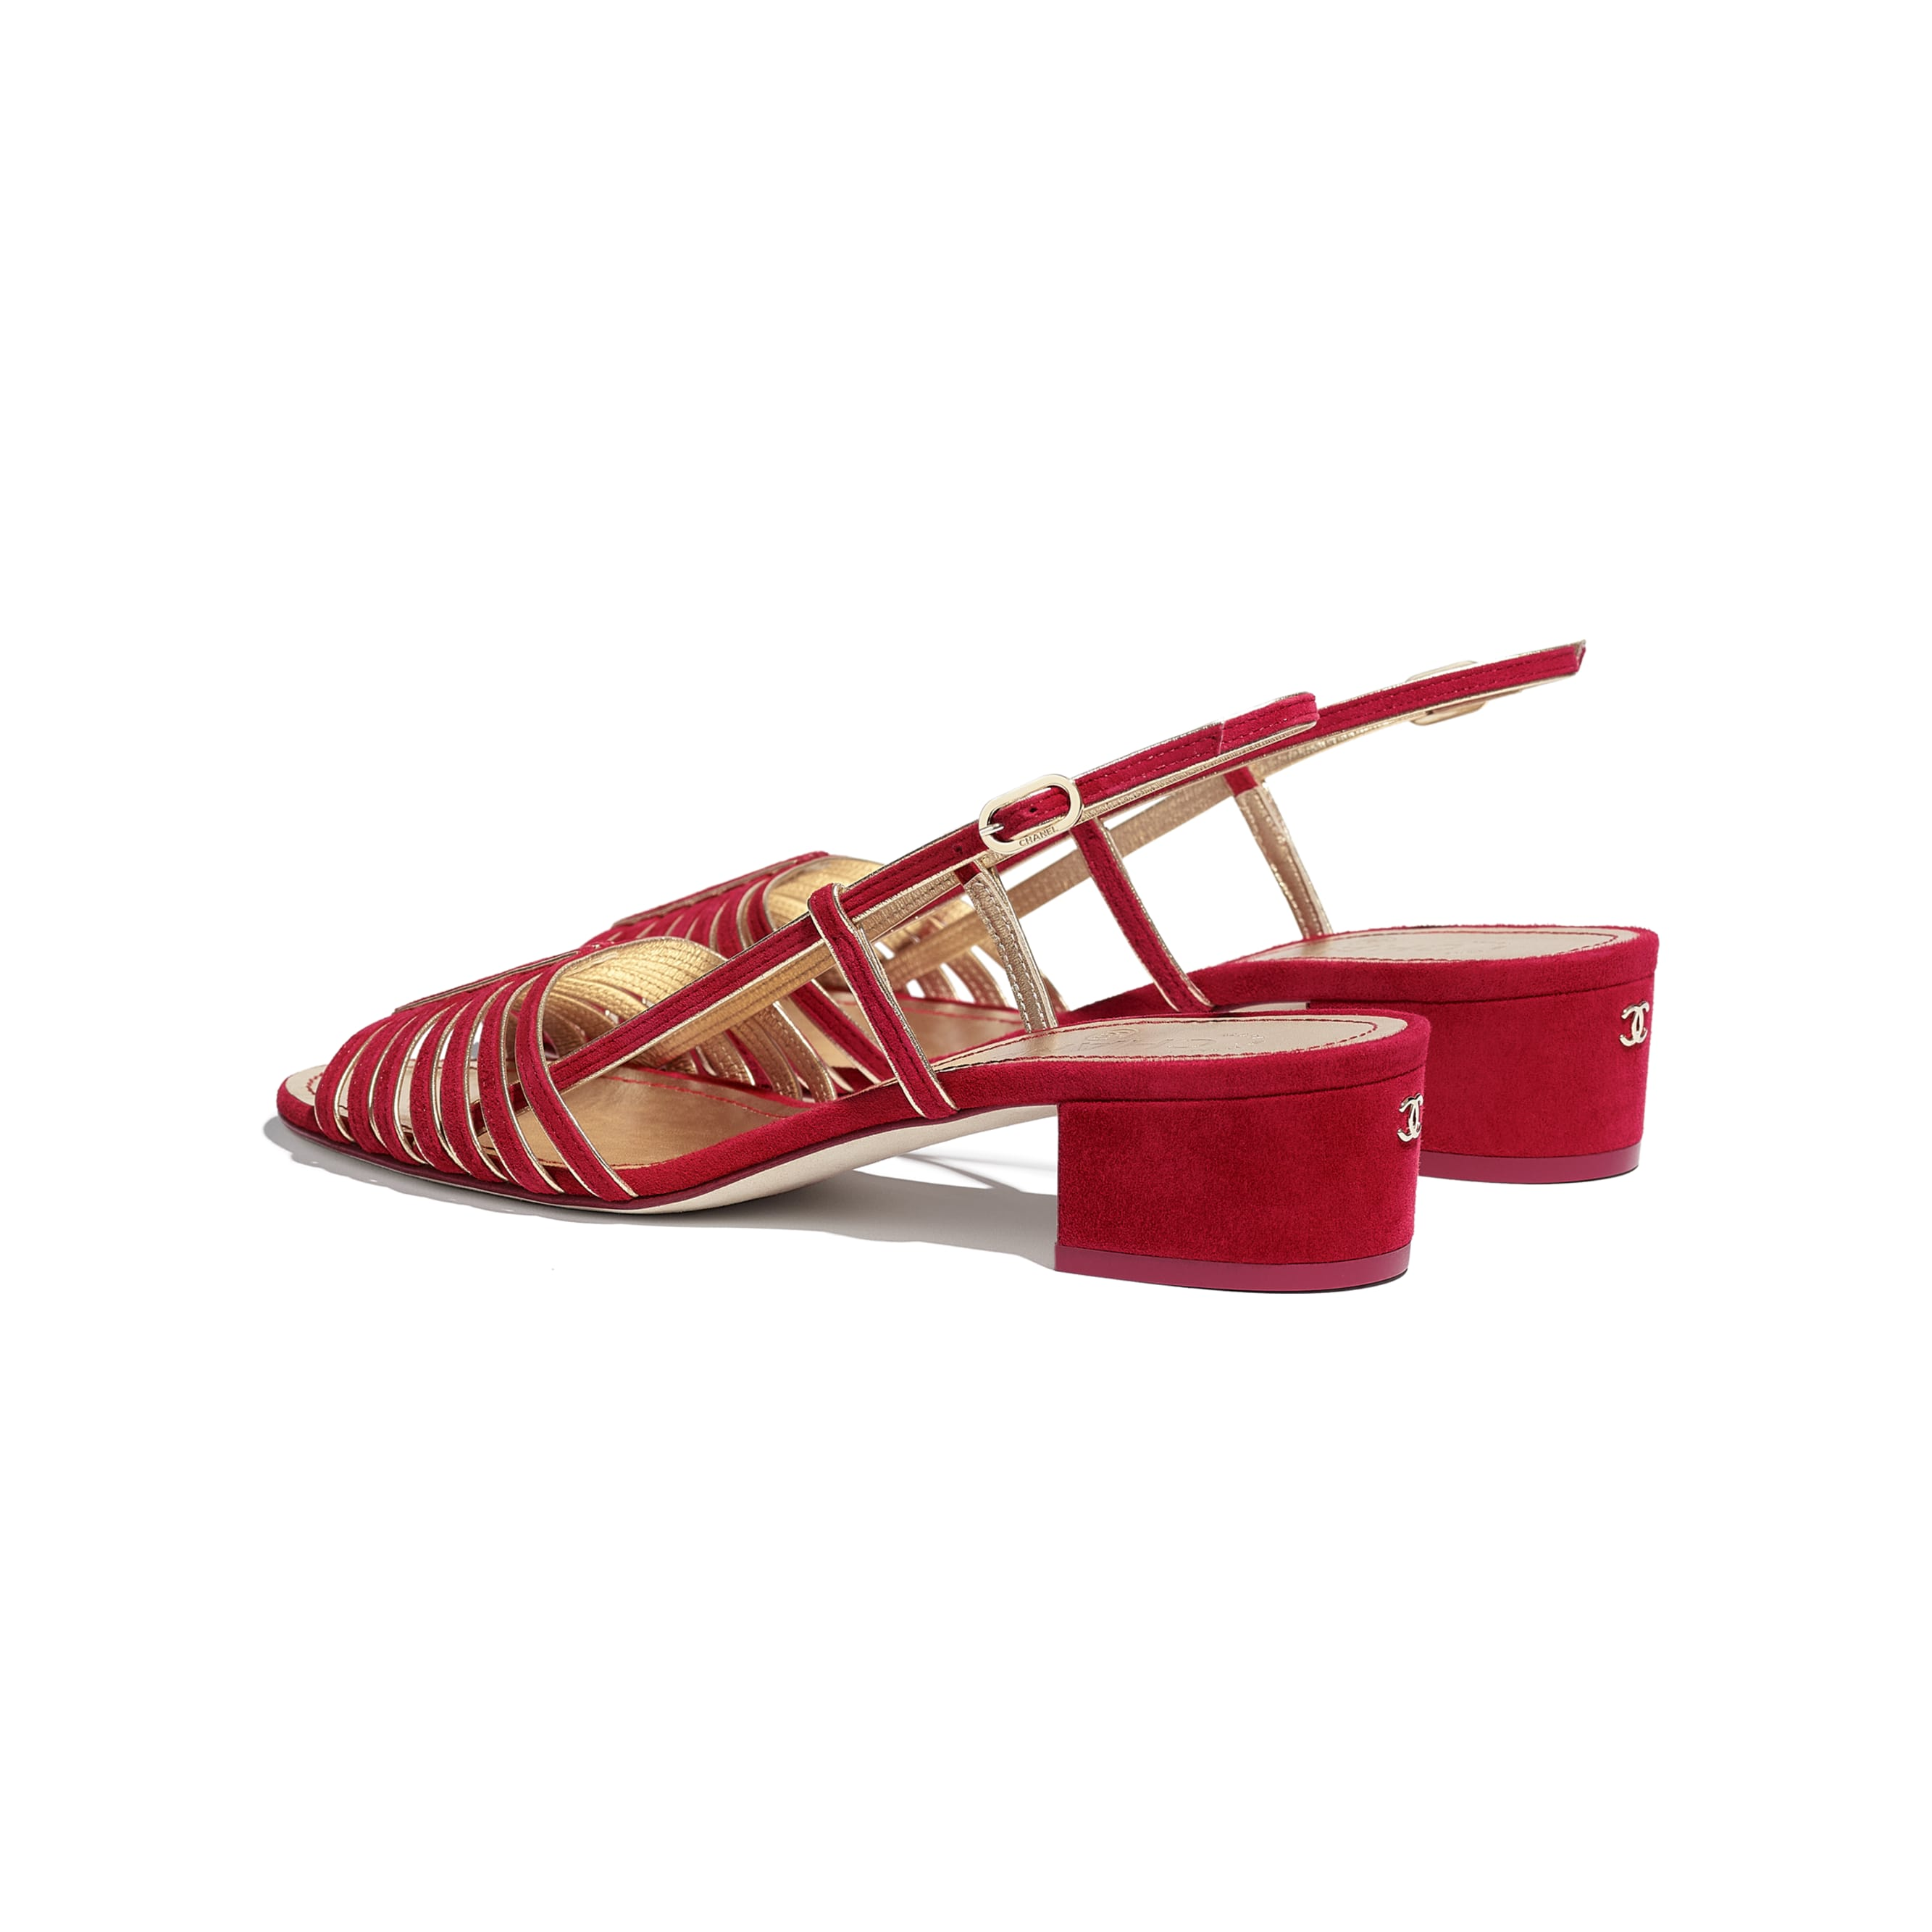 Sandals - Red & Gold - Suede Kidskin - CHANEL - Other view - see standard sized version